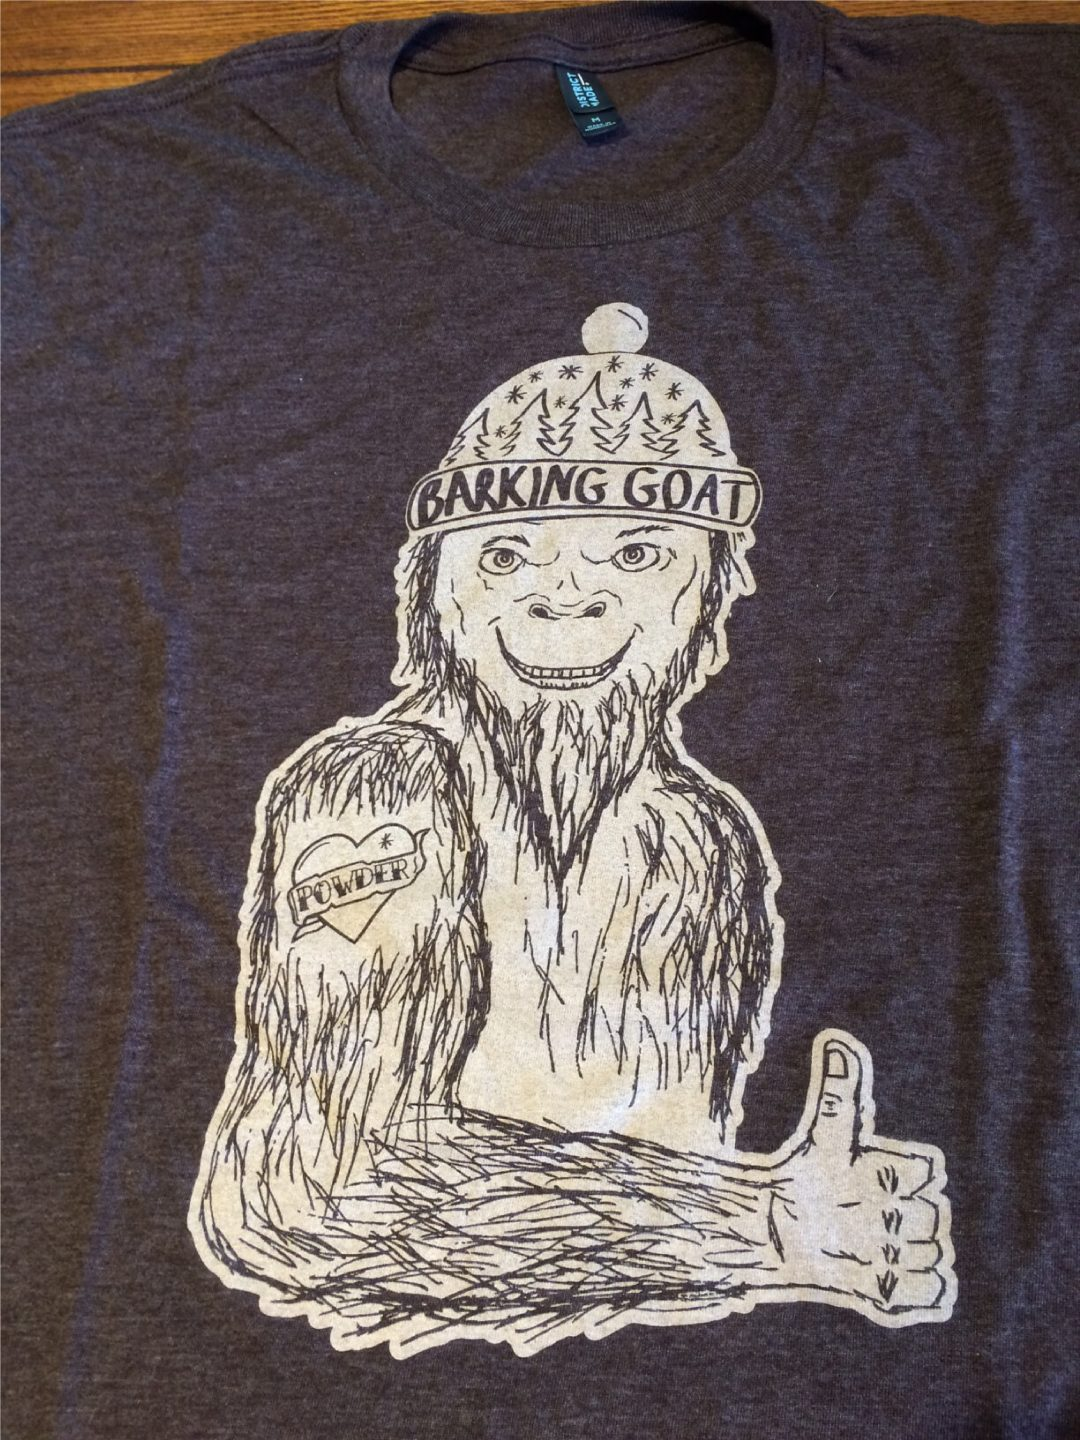 Heathered T-shirts with a Sasquatch print with a powder tattoo.